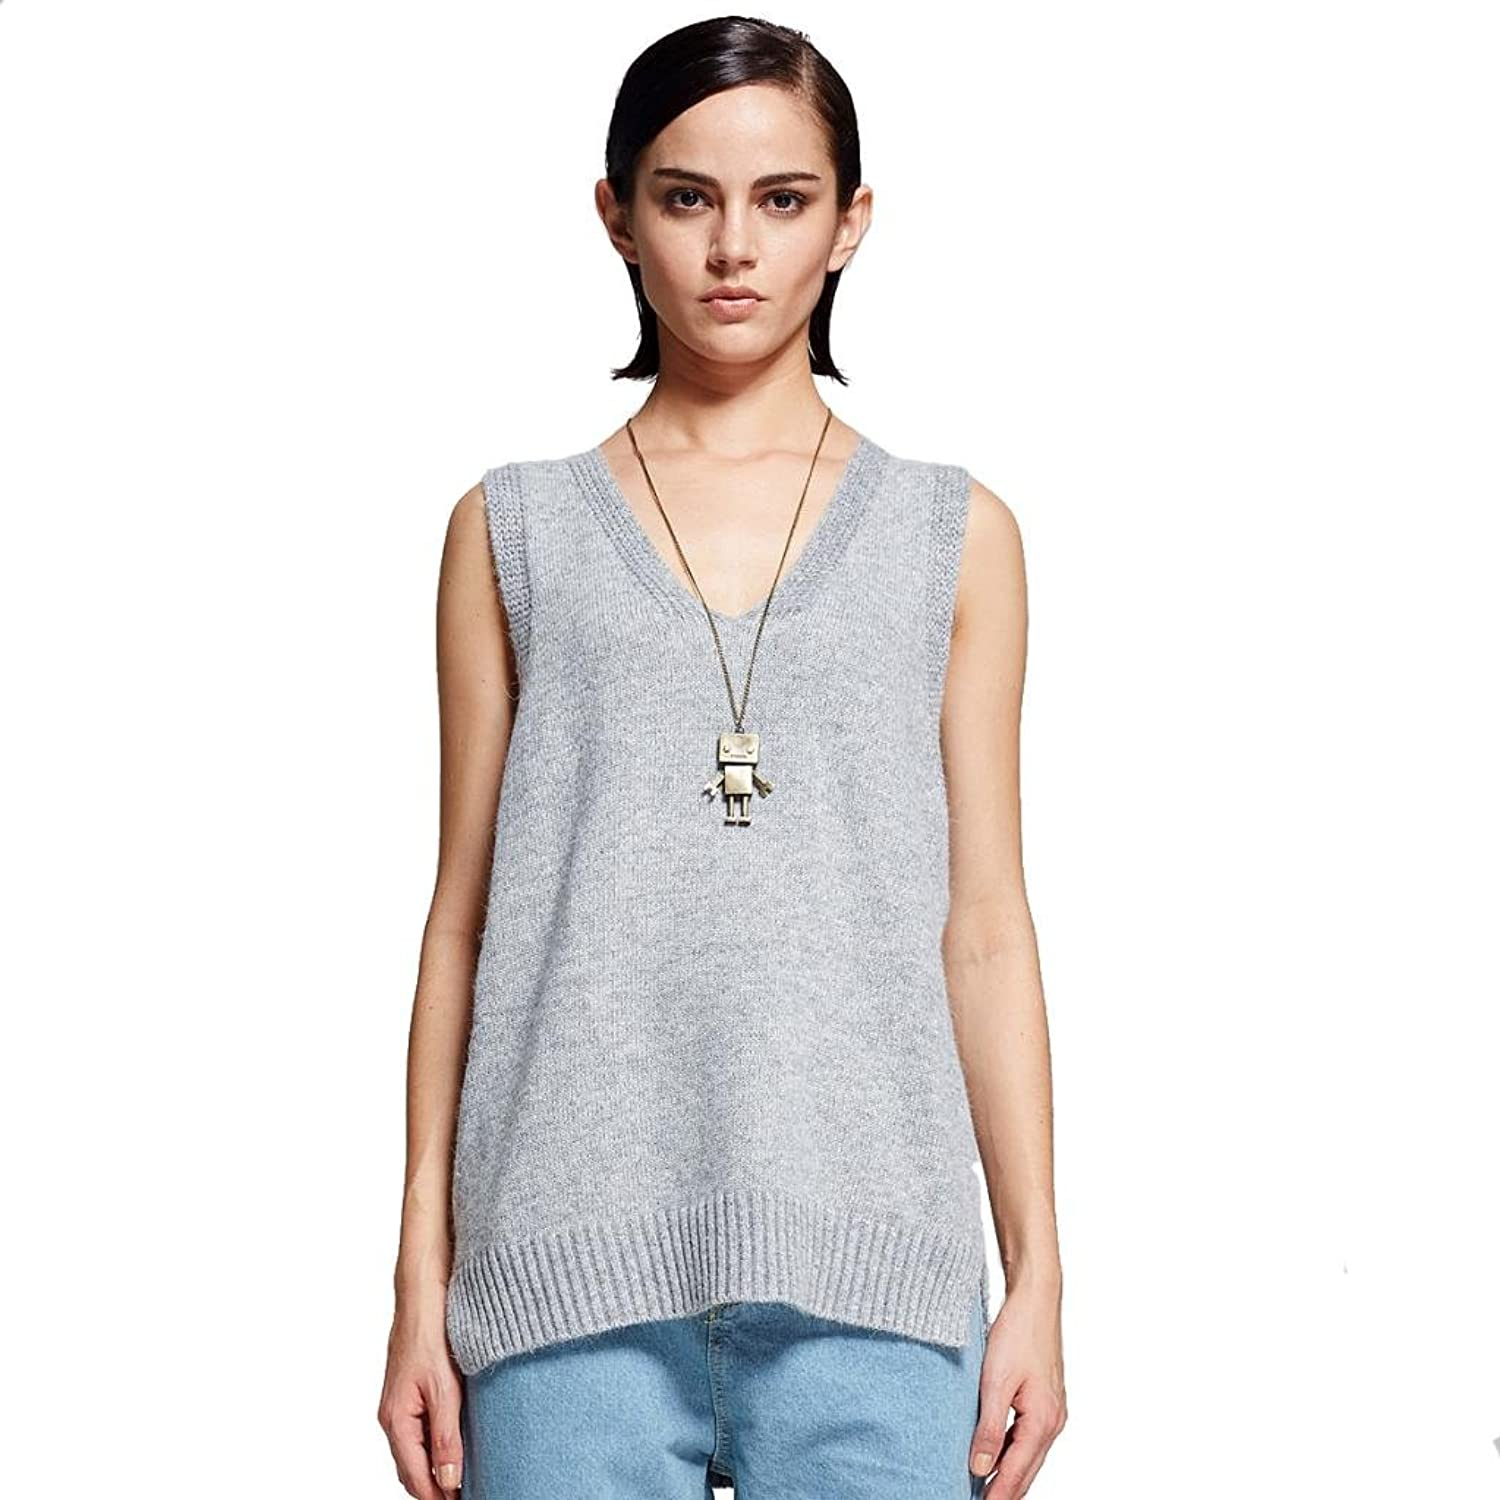 Diamond Candy Women's V Neck Sleeveless Loose Solid Color Knitted Vest